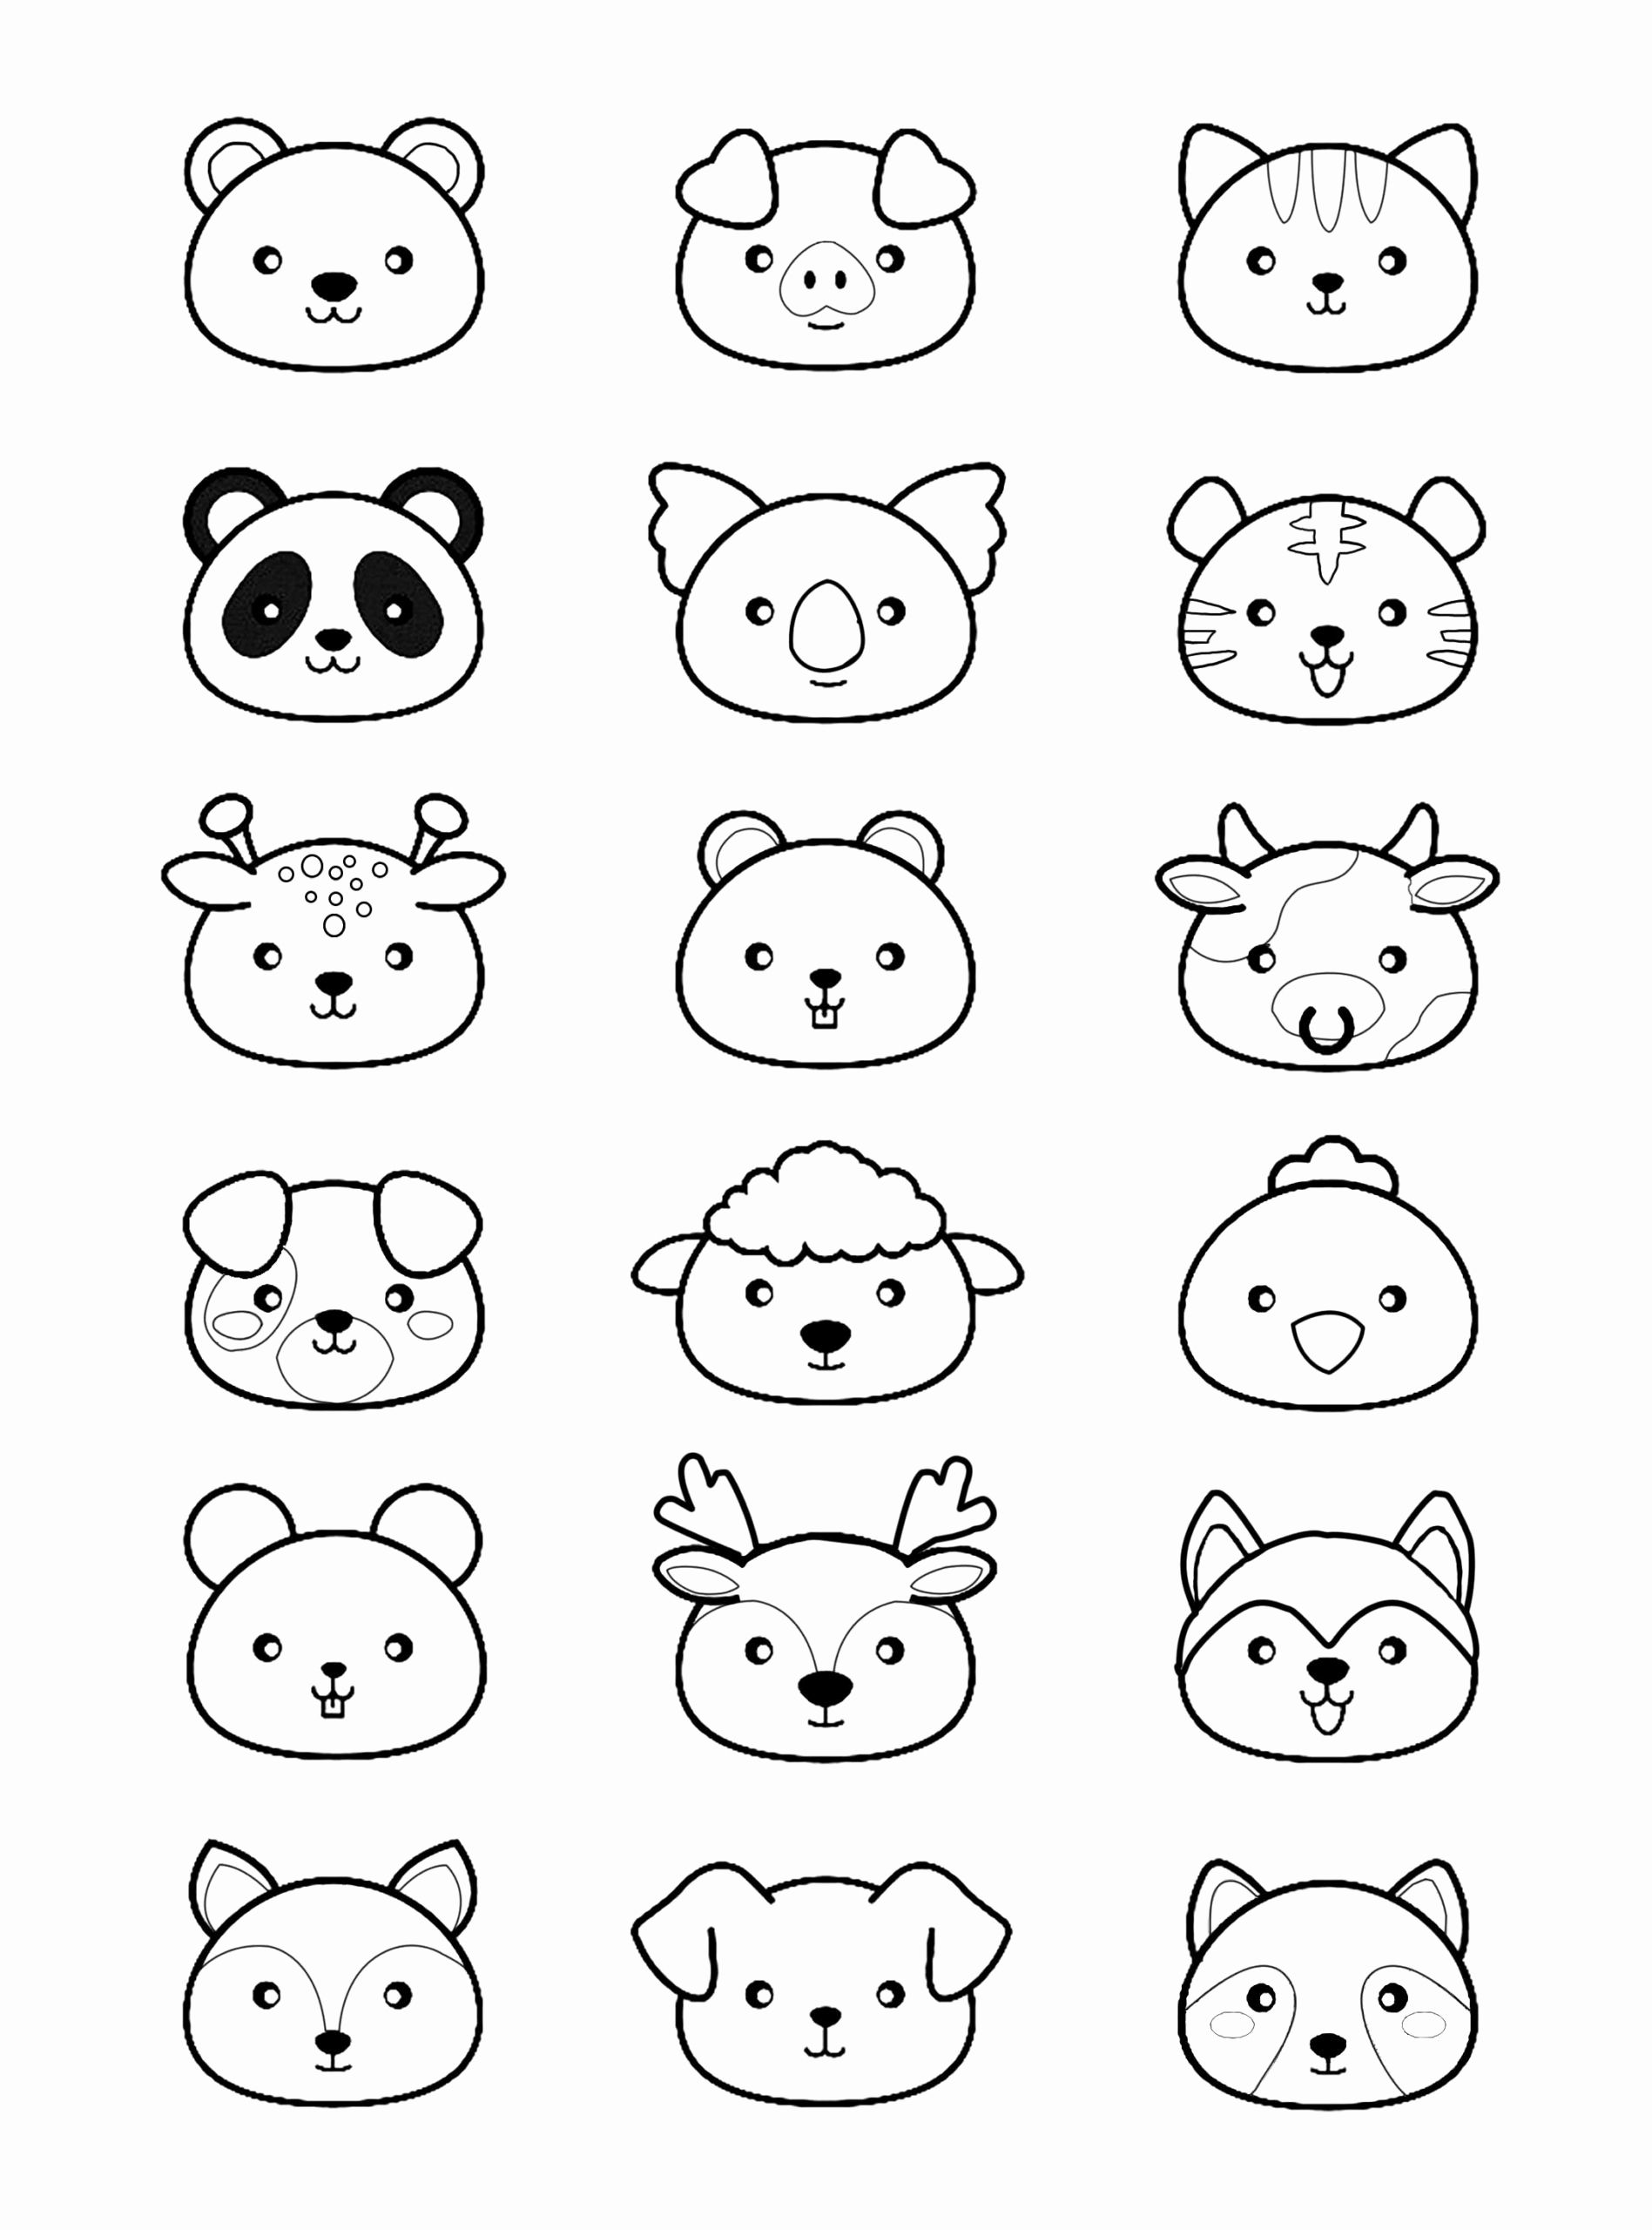 Cool Kawaii Animal Coloring Pages For Kids In 2020 Panda Coloring Pages Cute Coloring Pages Cute Kawaii Drawings